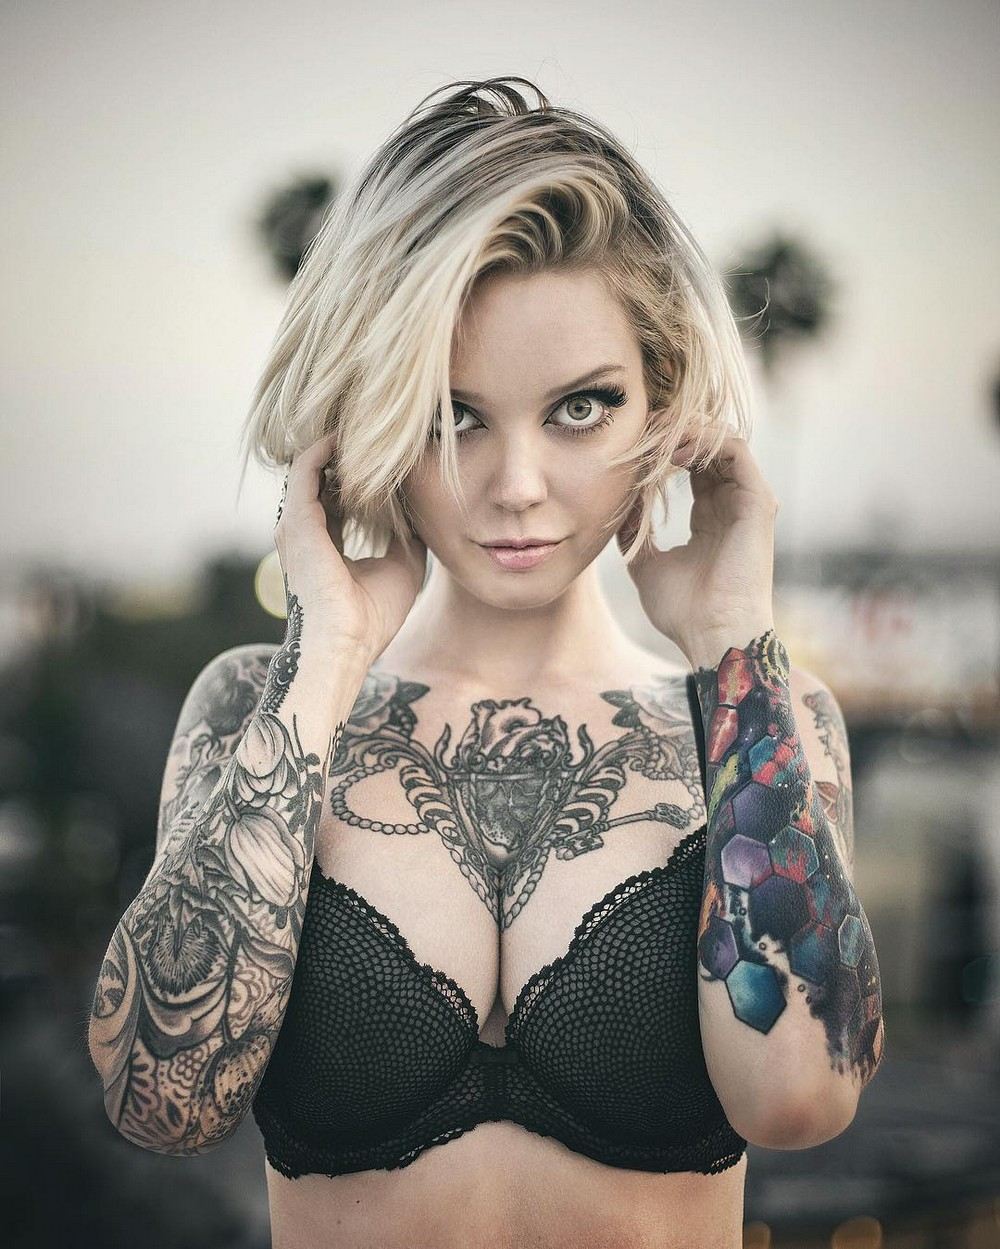 Boob Tattoos Are The Latest Titillating Trend Taking Over Instagram